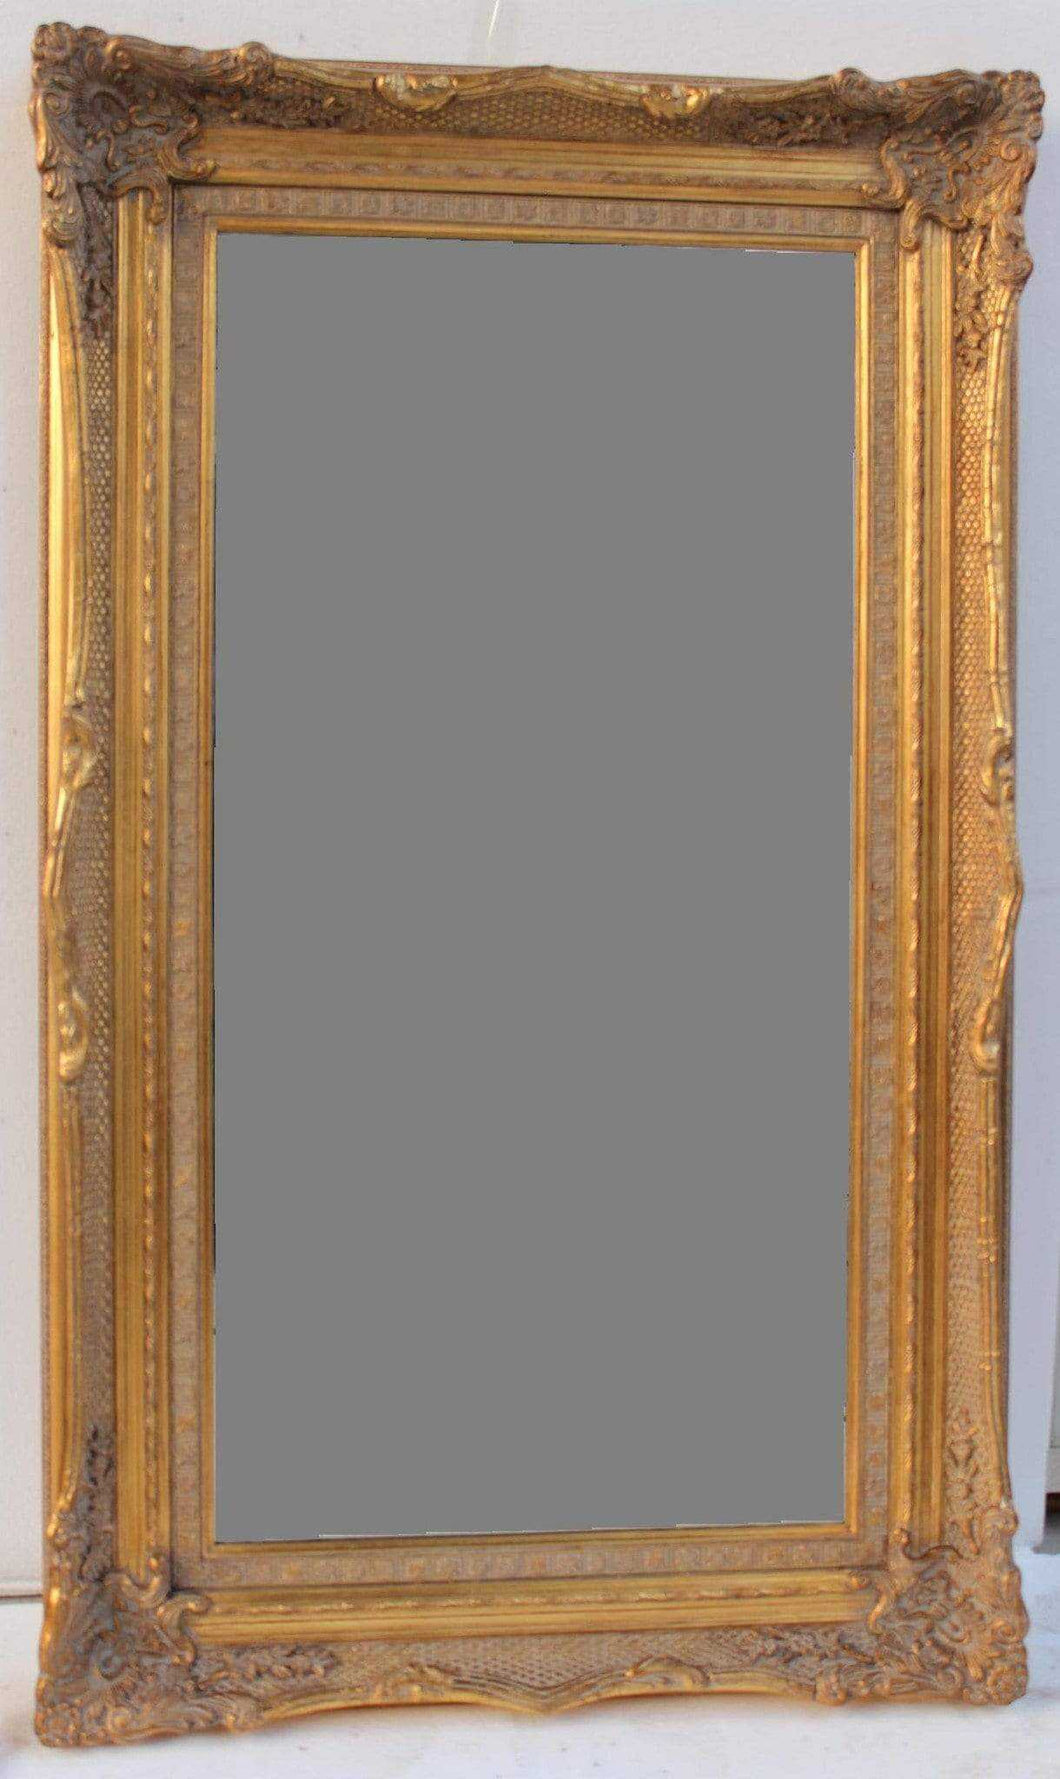 TAY UCHO FRENCH PROVINCIAL ORNATE MIRROR ANTIQUE GOLD - mirrors-city-aus